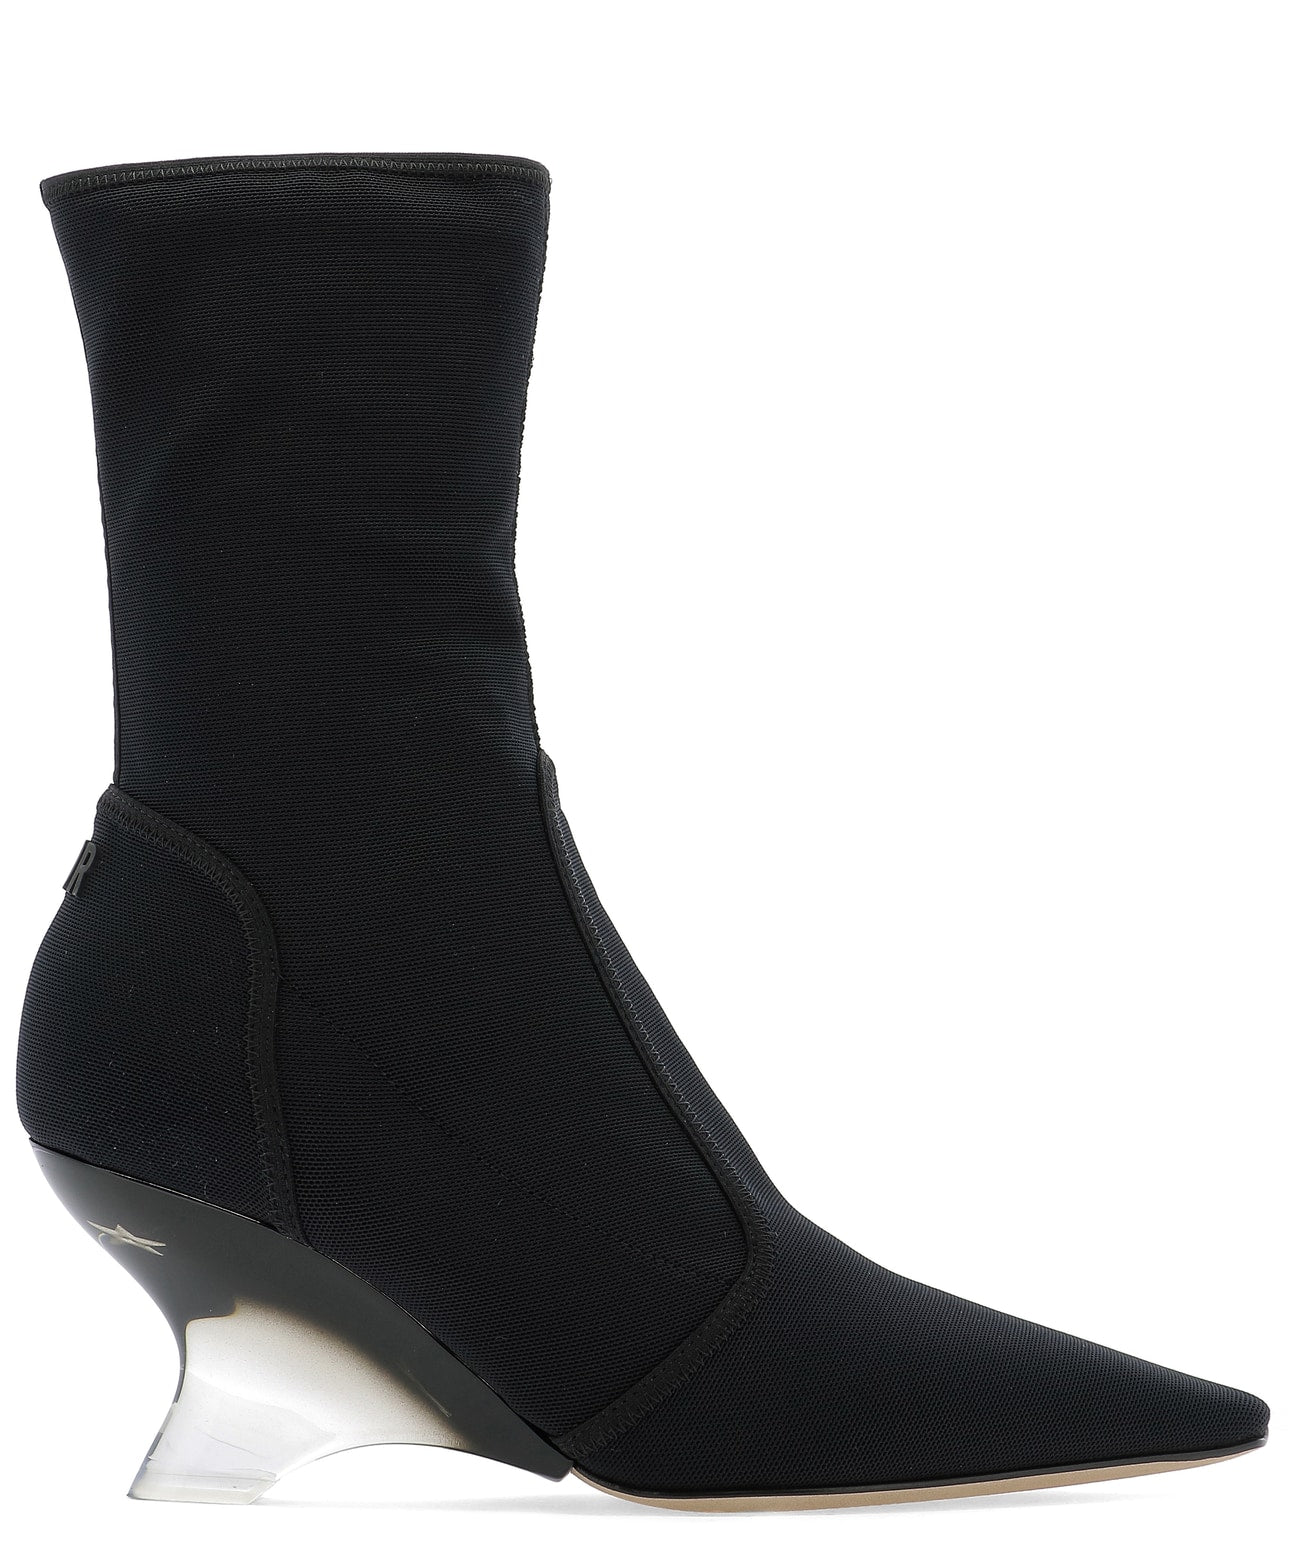 Dior DIOR ETOILE ANKLE BOOTS